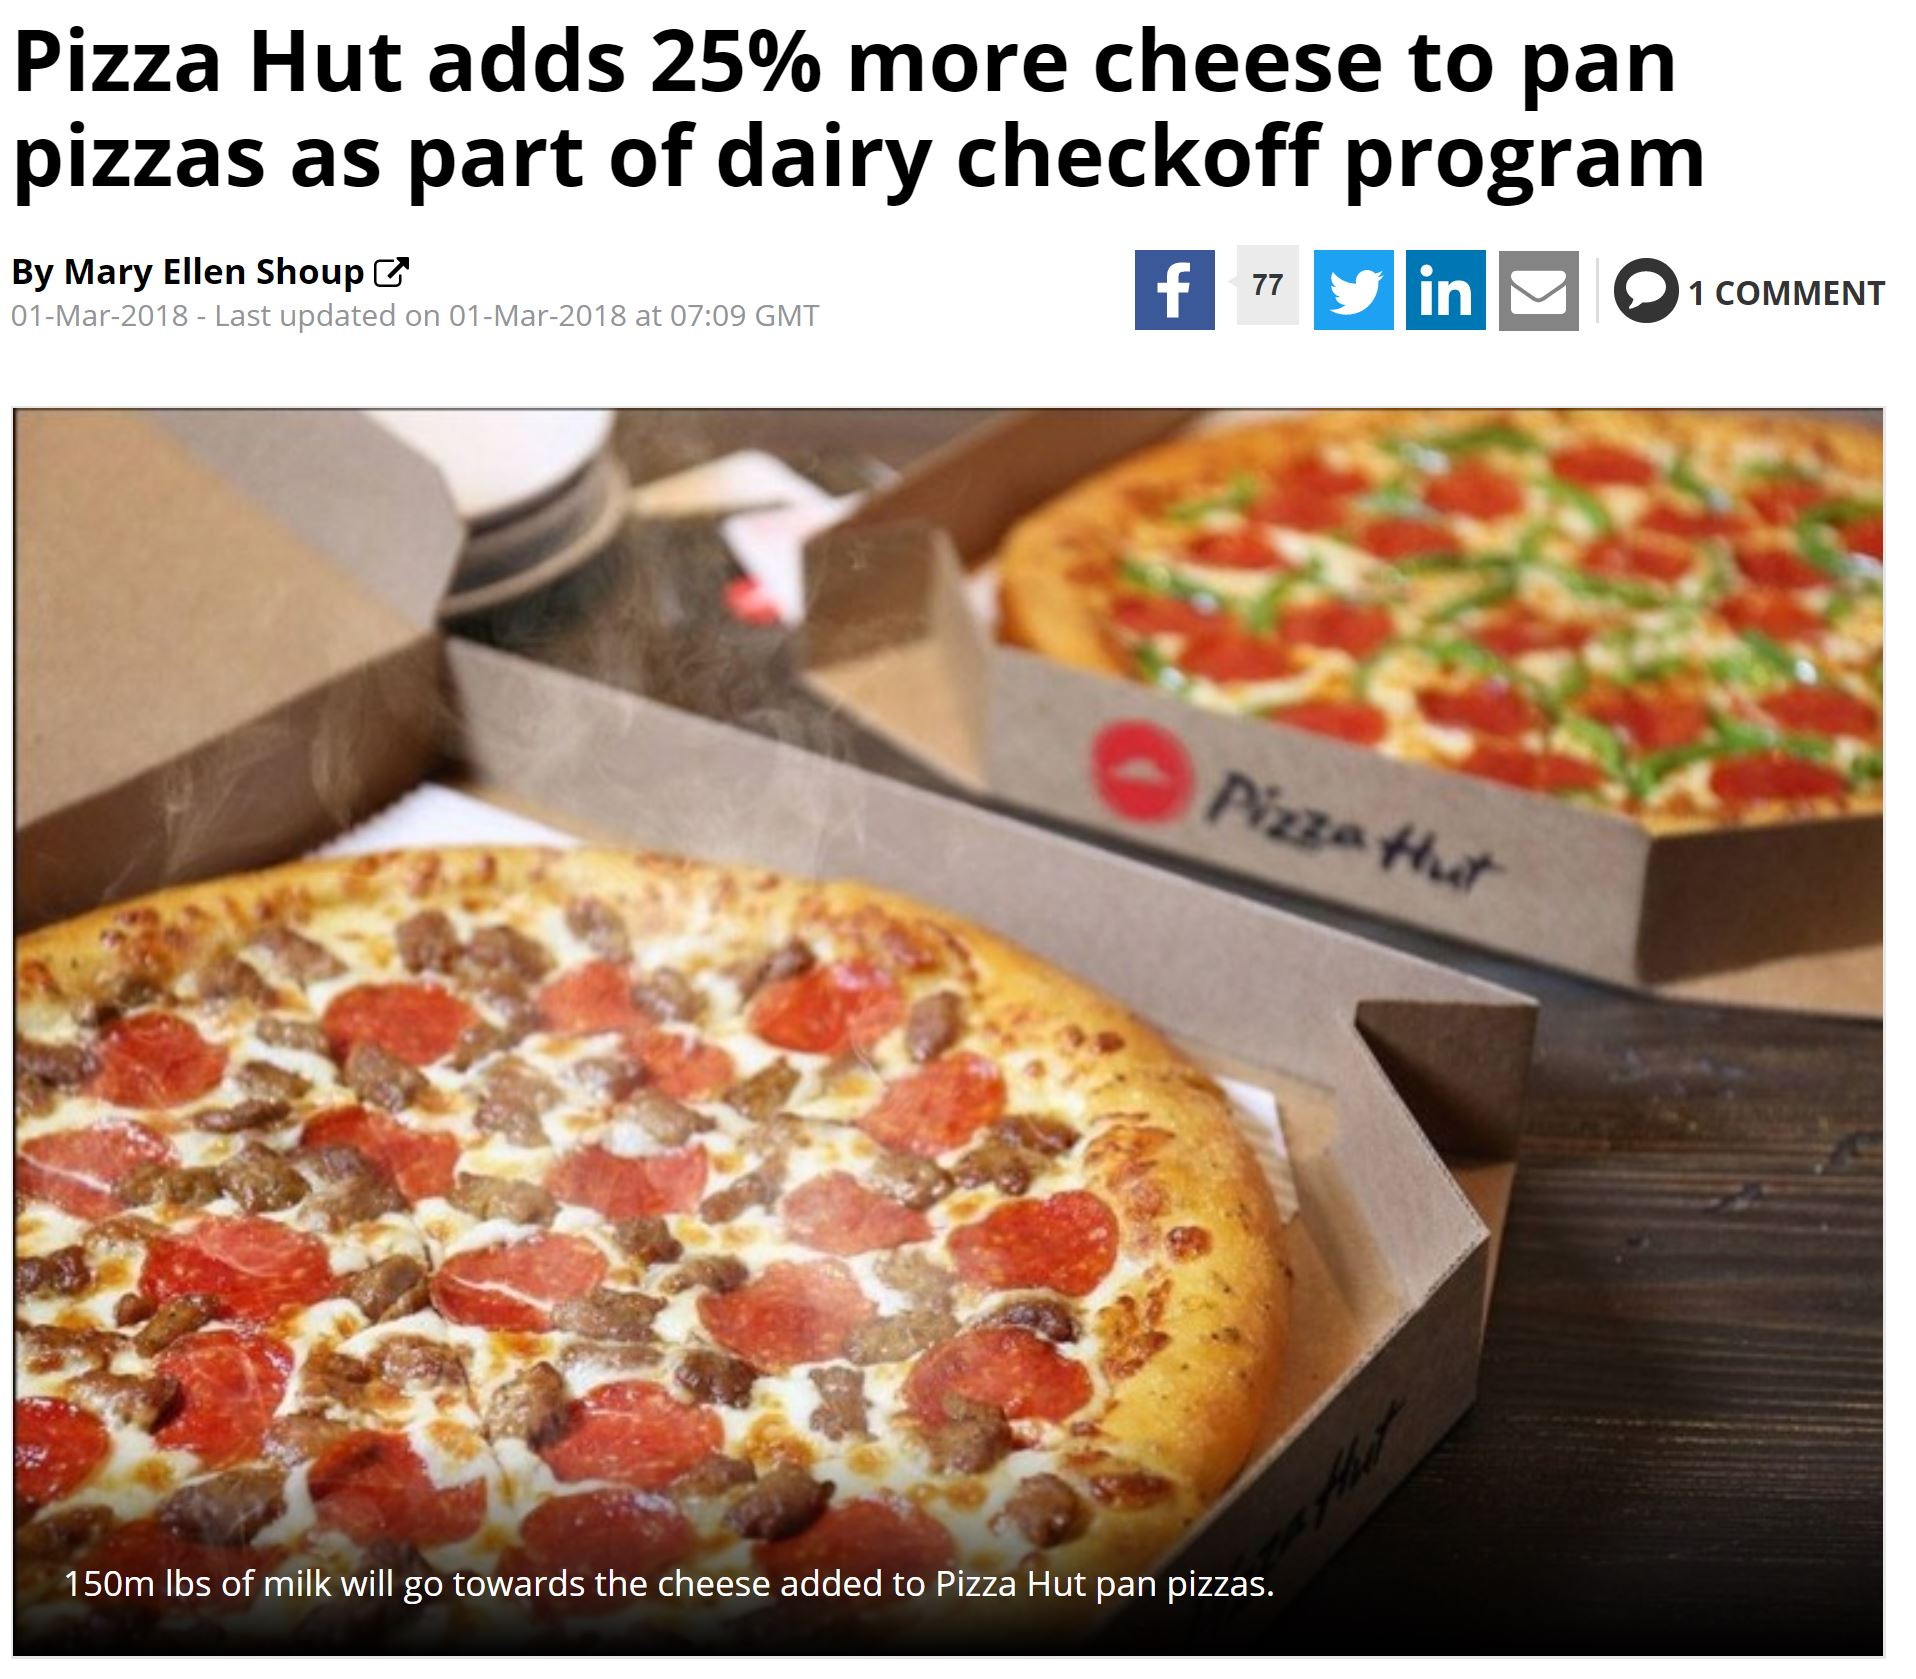 pizza hut checkoff program adds more cheese